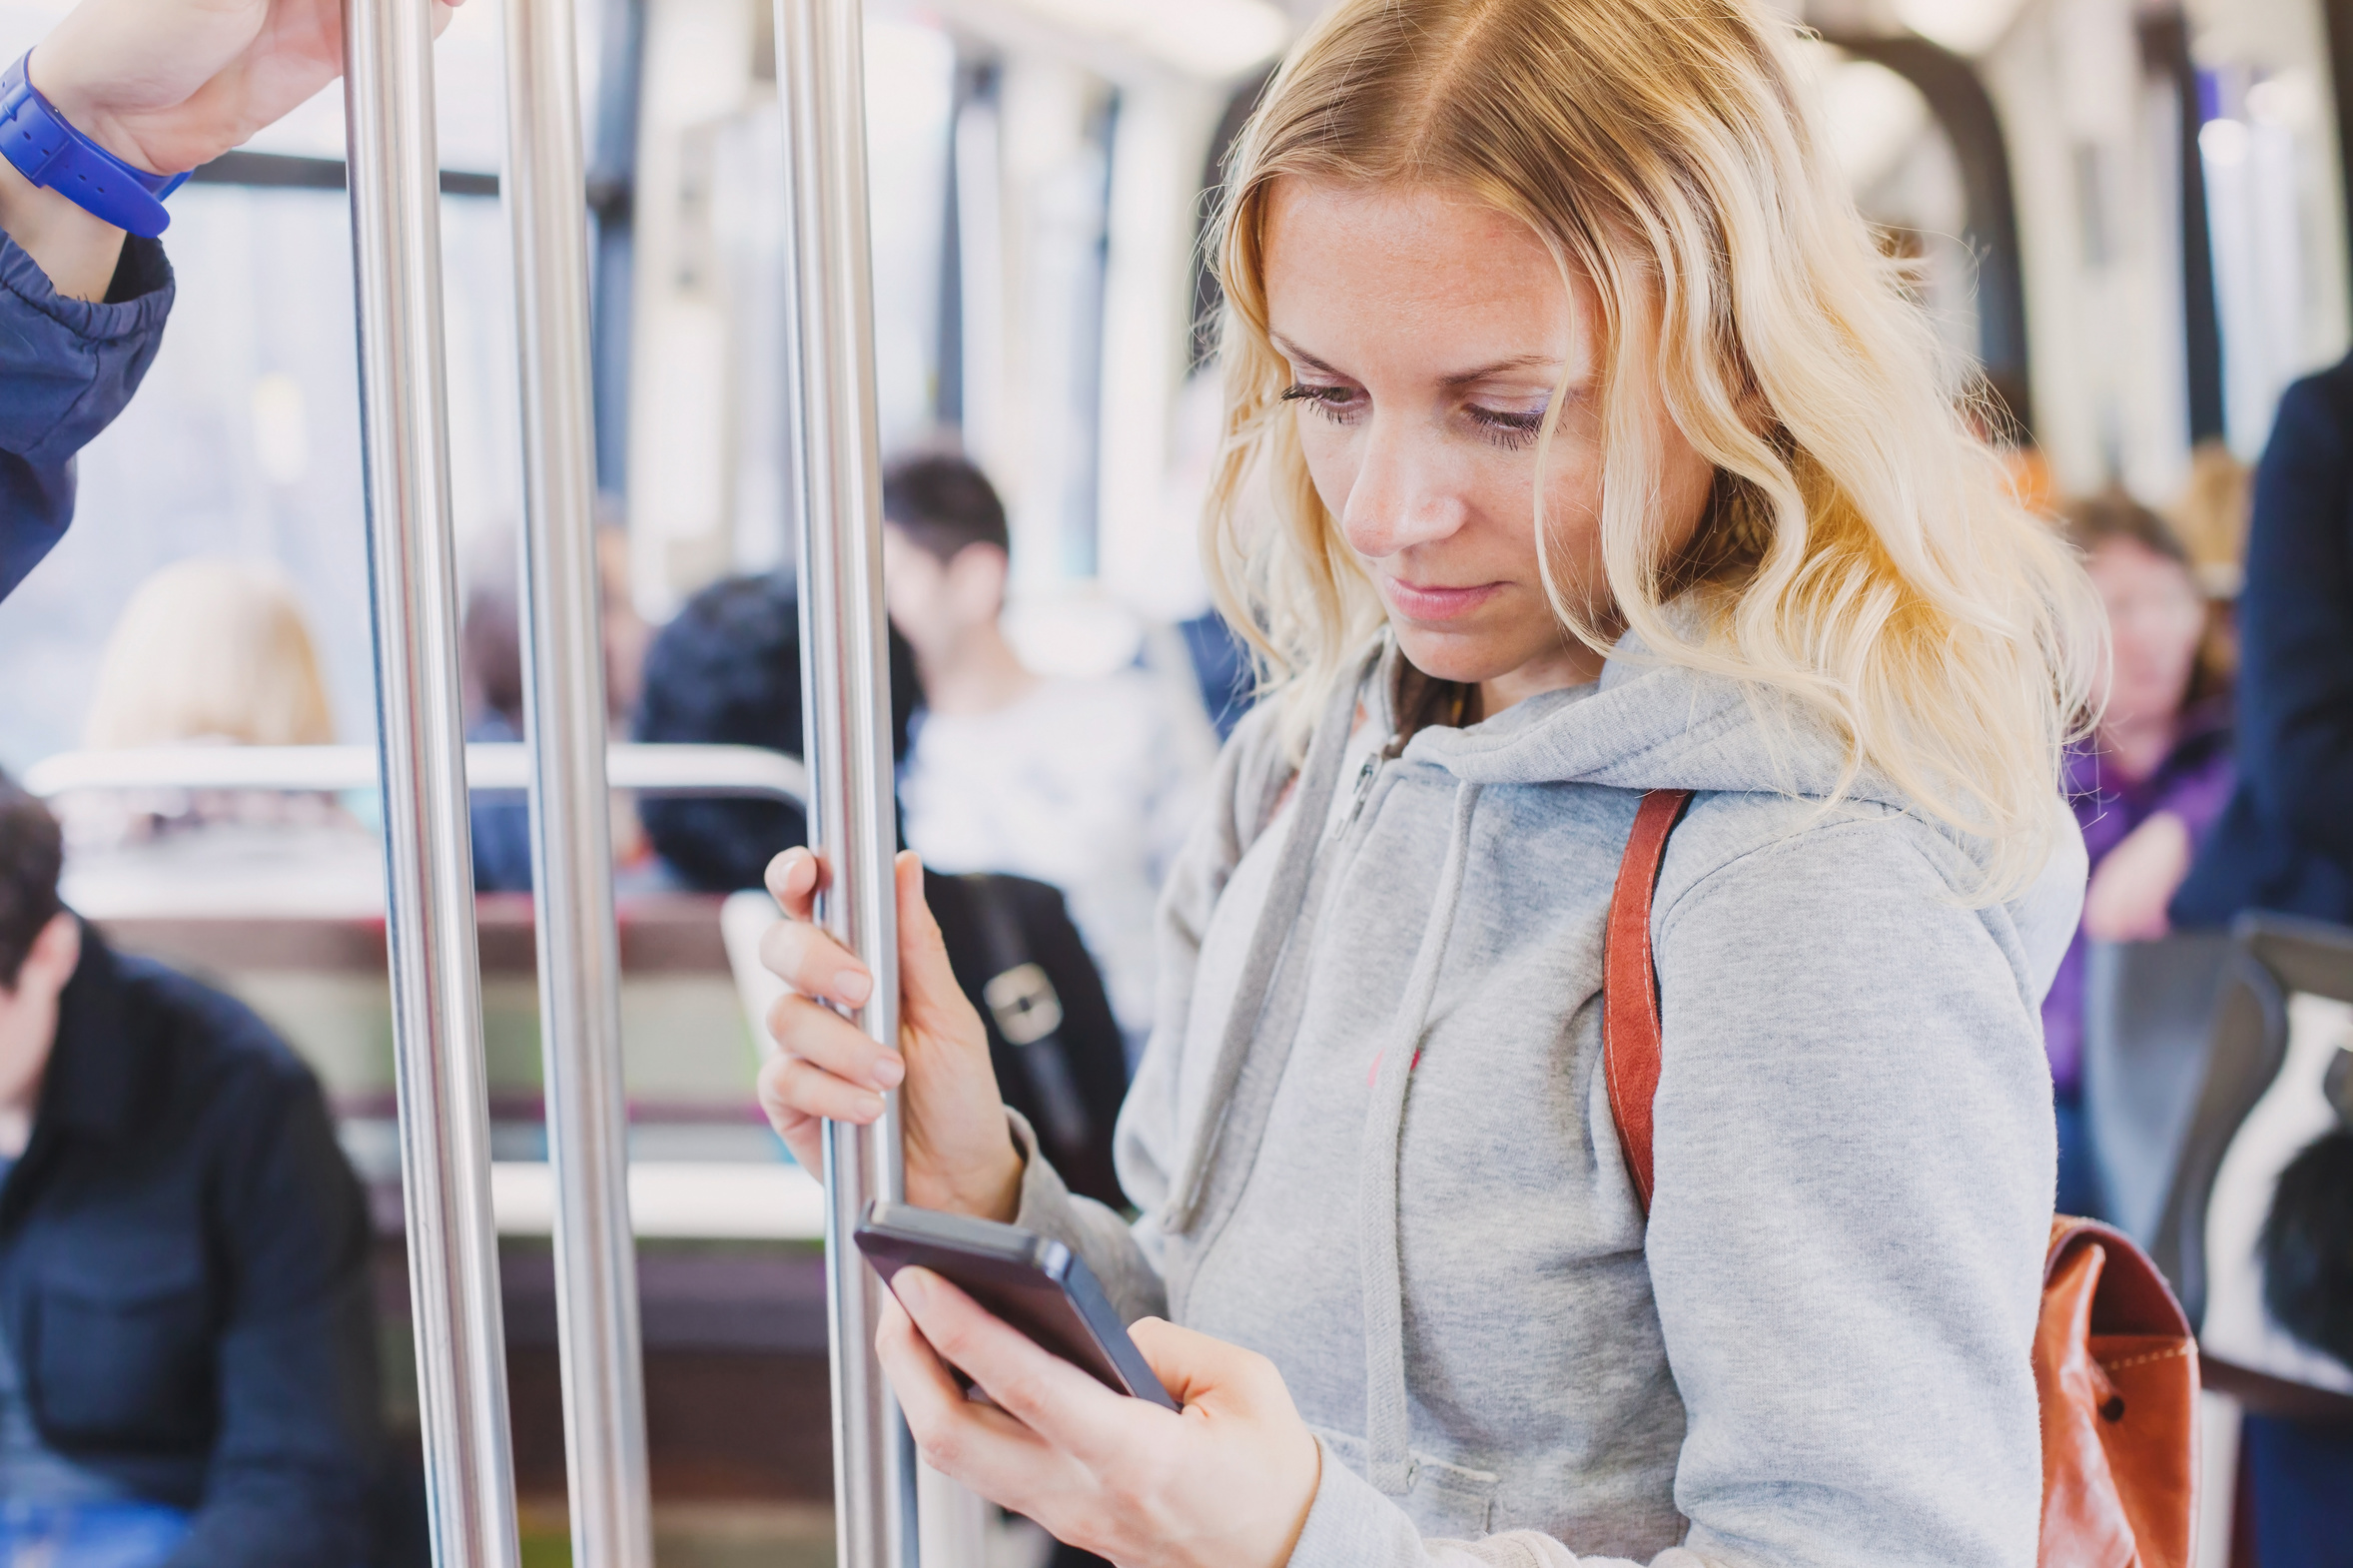 people in metro, commuters, woman passenger looking at the screen of her smartphone